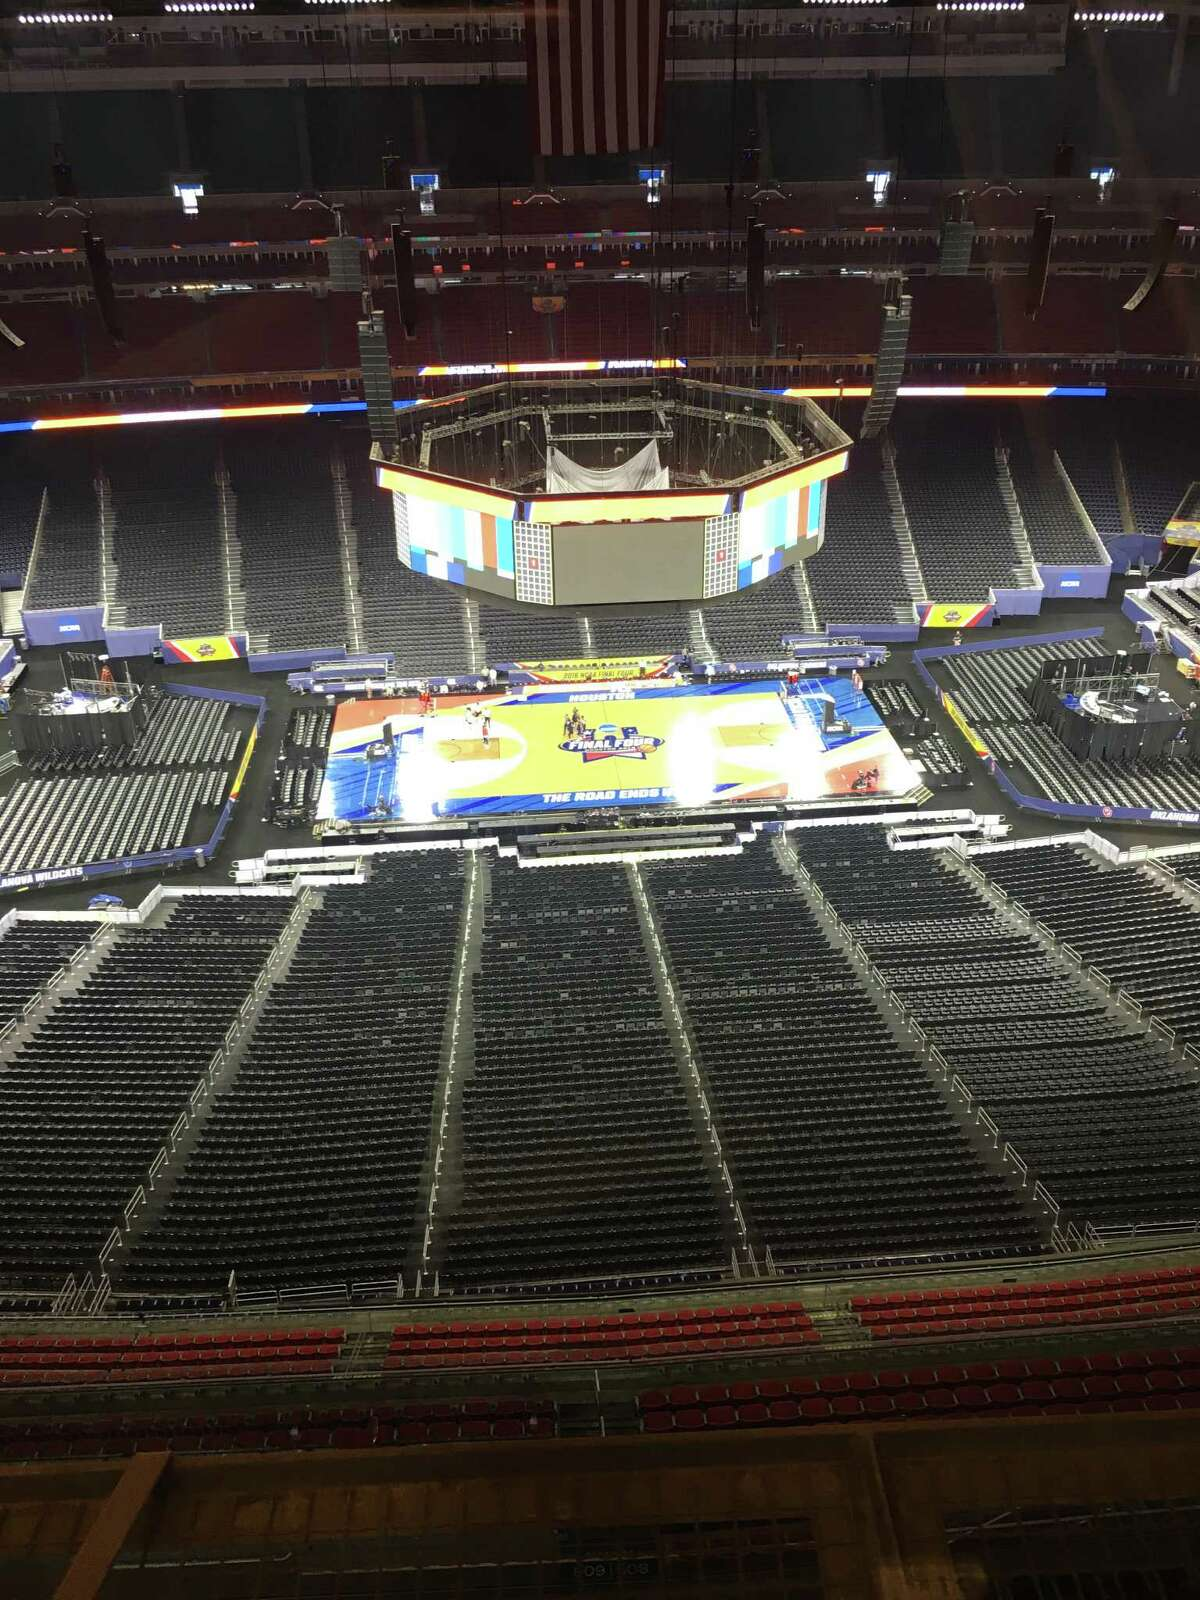 The view from the Final Four press box at NRG Stadium on Thursday.